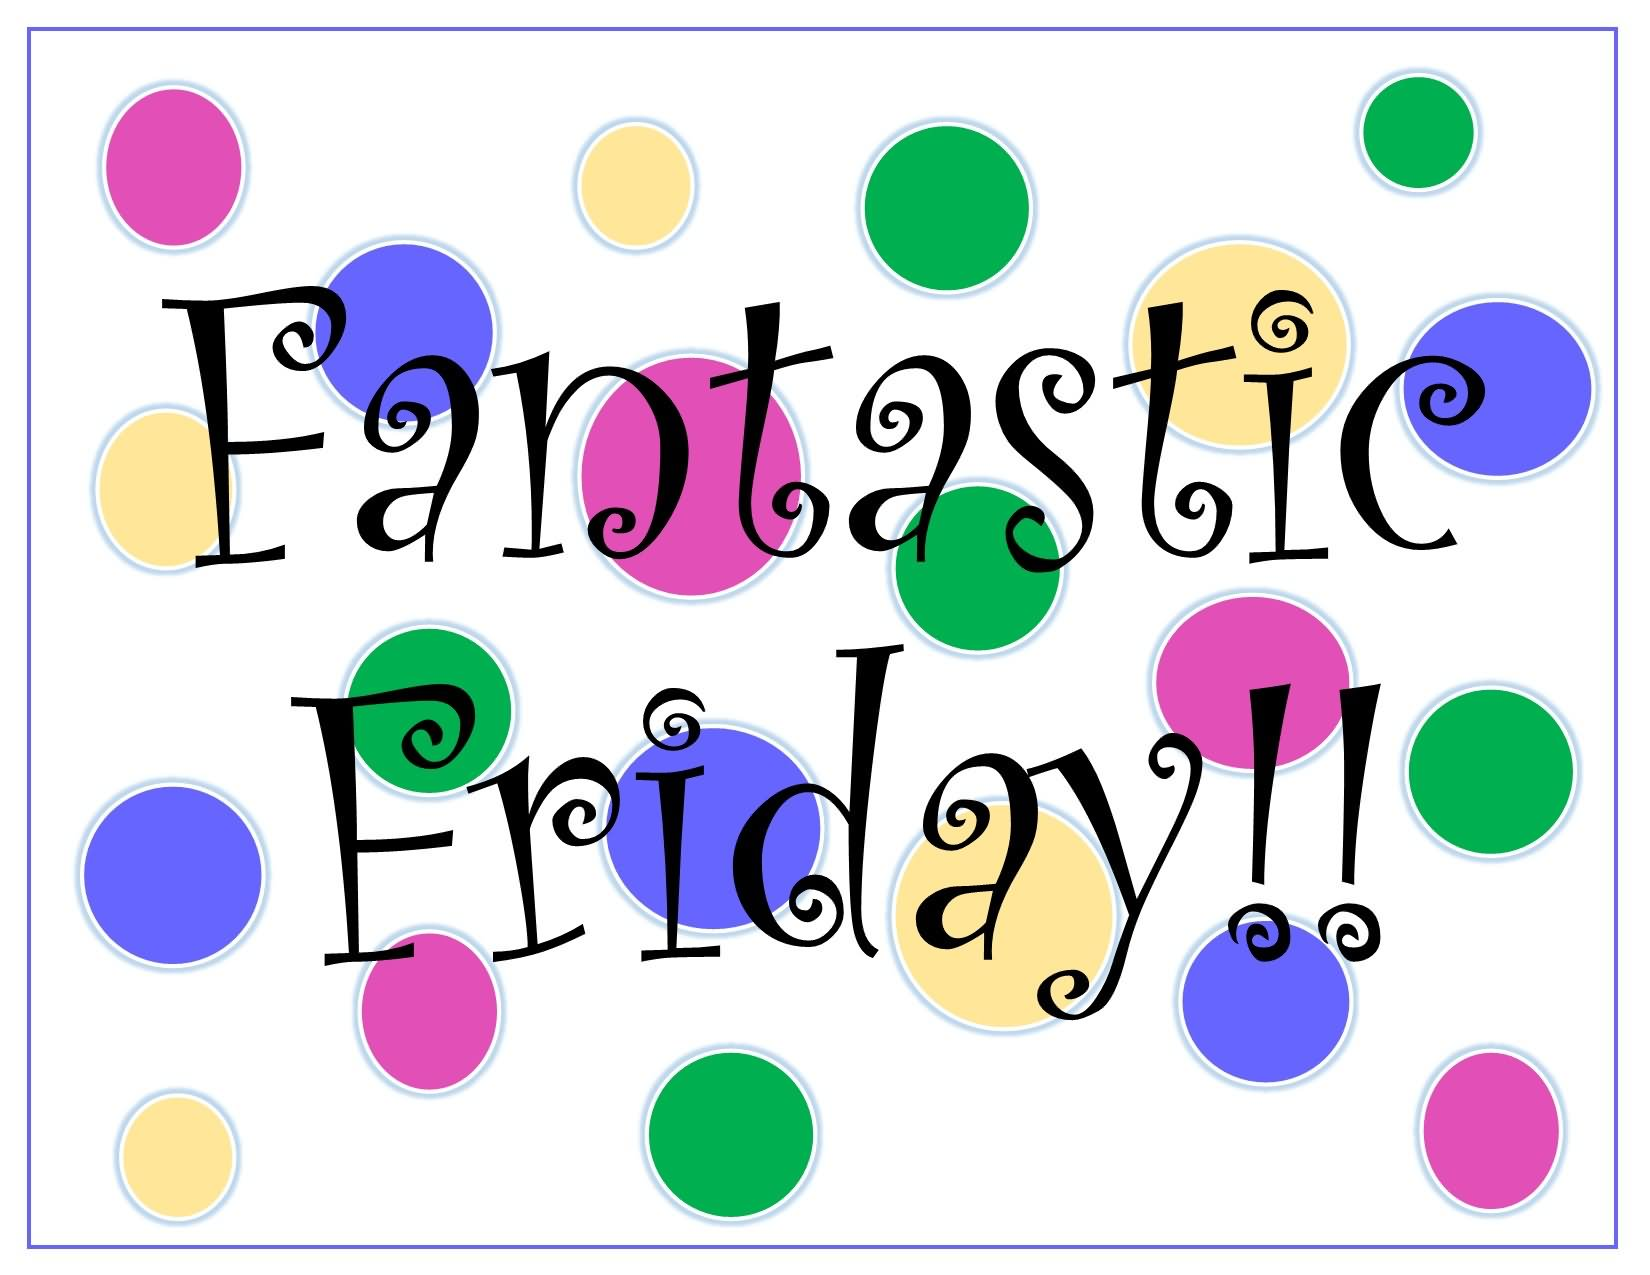 friday happy fantastic fun clipart quotes tgif its smile weekend fridays thank flyer clipartmag rev far june let quotesgram morning